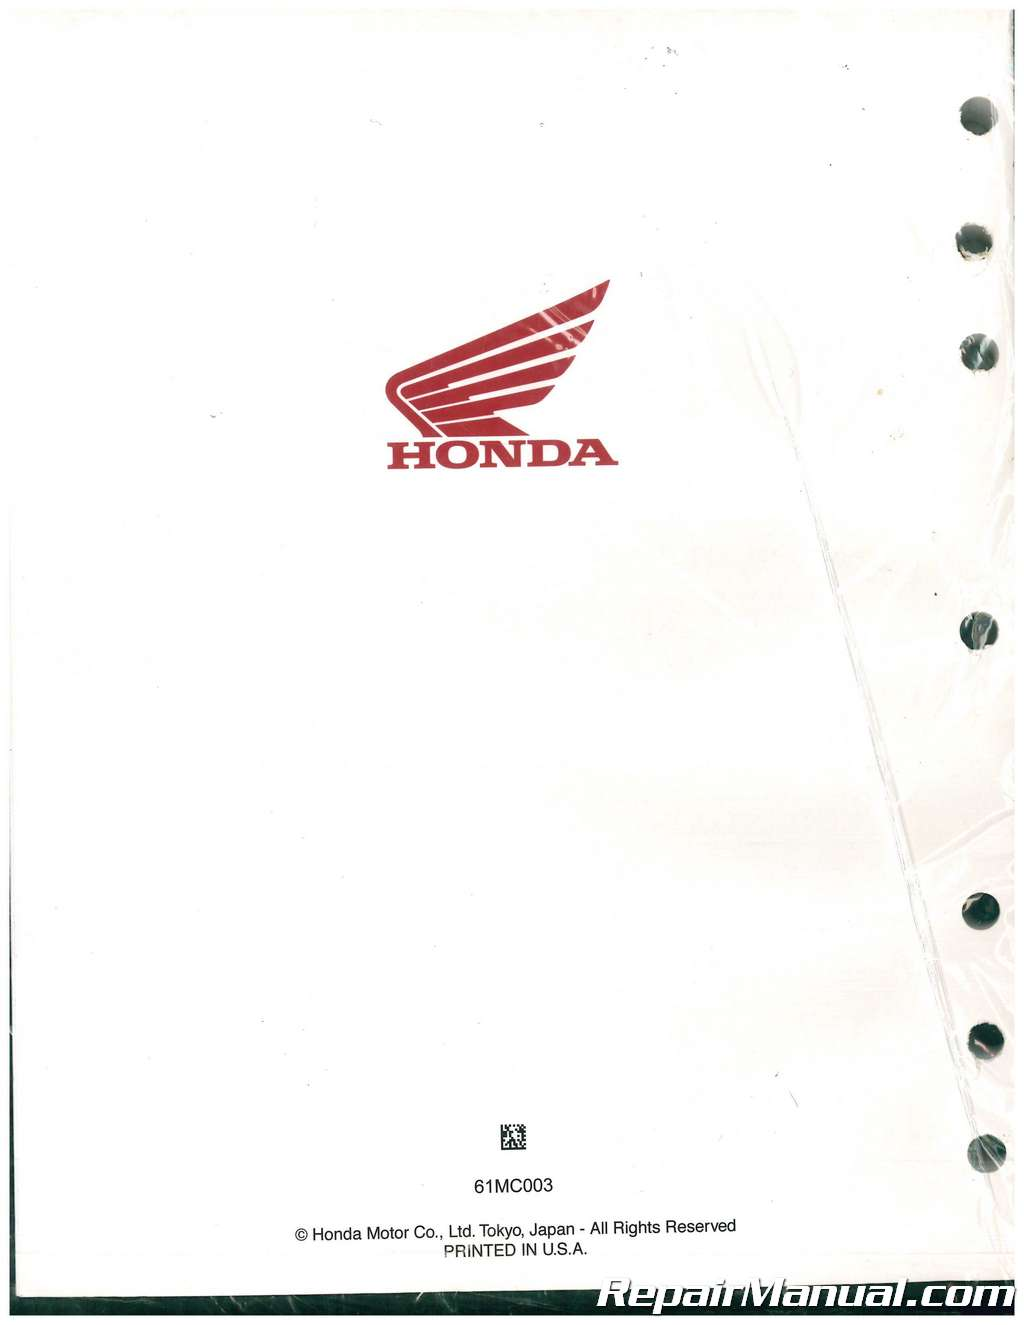 wiring diagram for a 1991 honda 750 nighthawk motorola